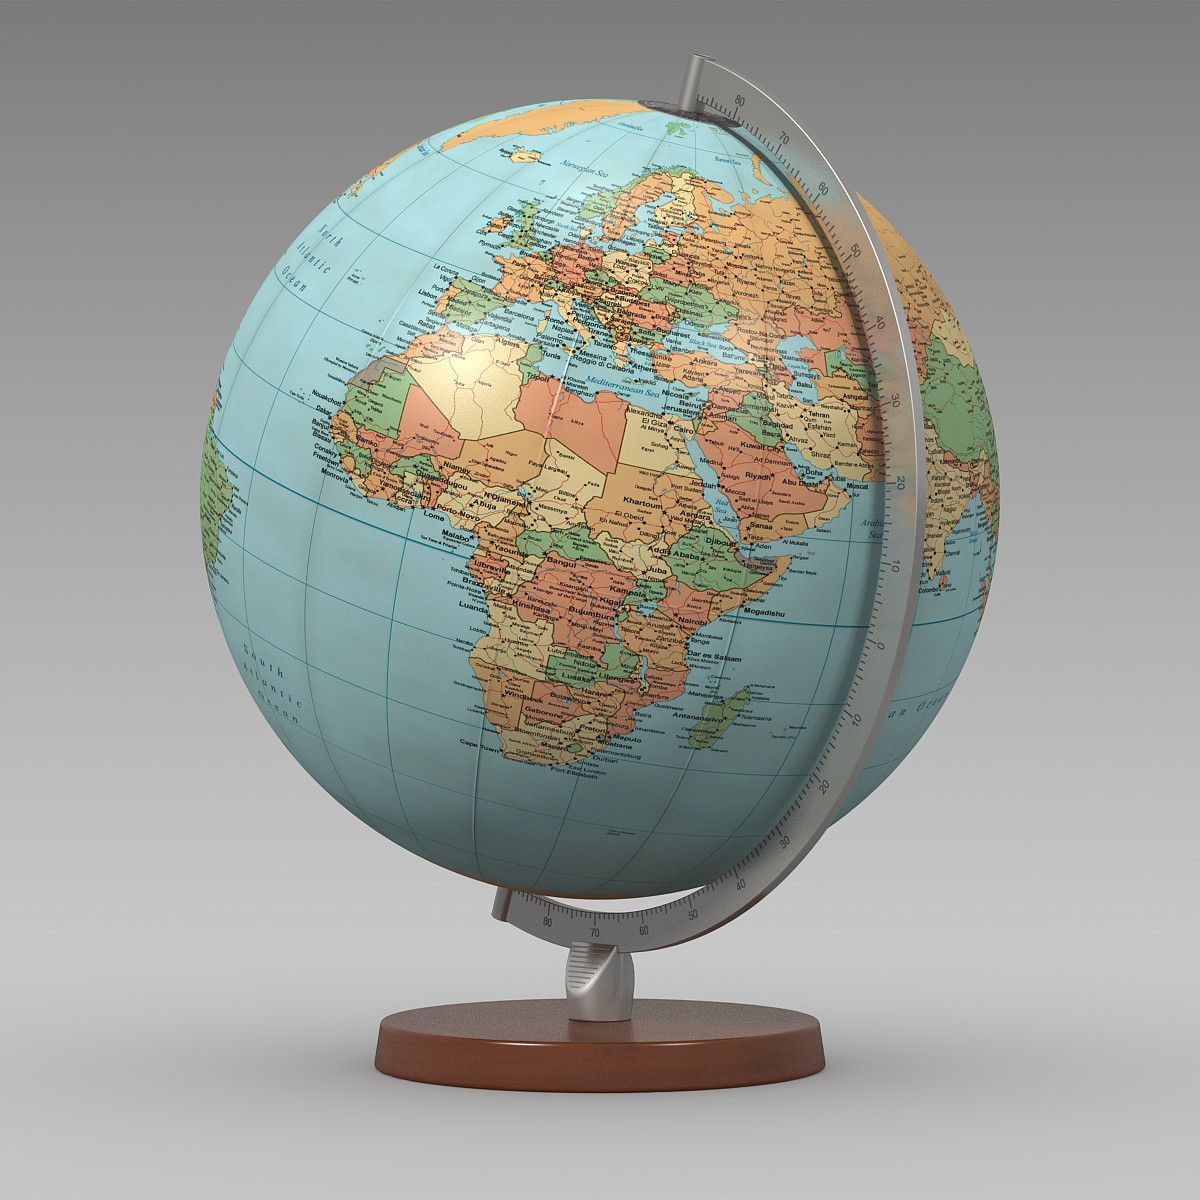 3d model world globe 3d model 3d modeling pinterest globe 3d model world globe 3d model gumiabroncs Choice Image